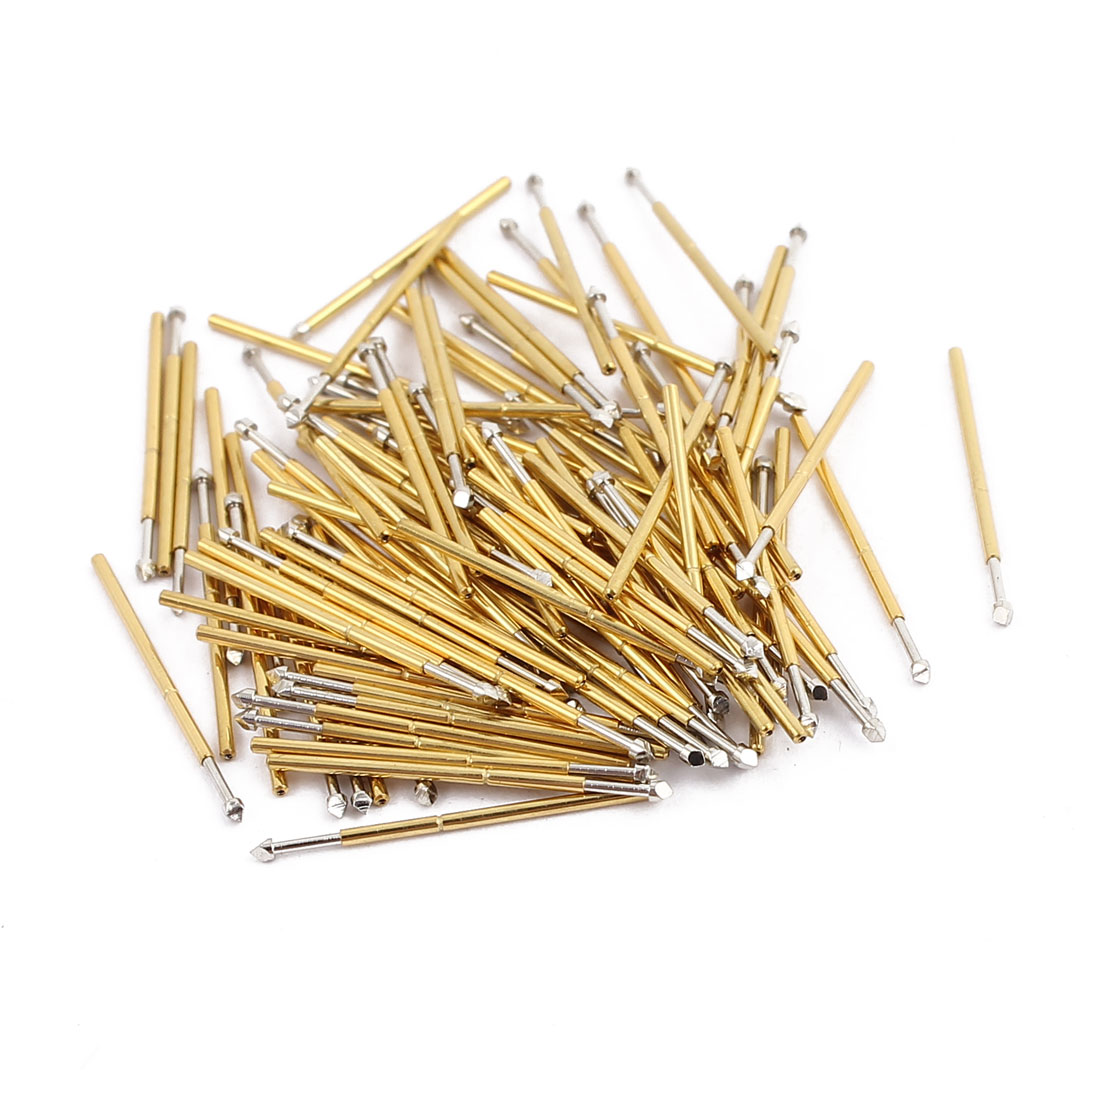 100pcs P50-T2 0.68mm Dia 16.5mm Length Metal Spring Pressure Test Probe Needle